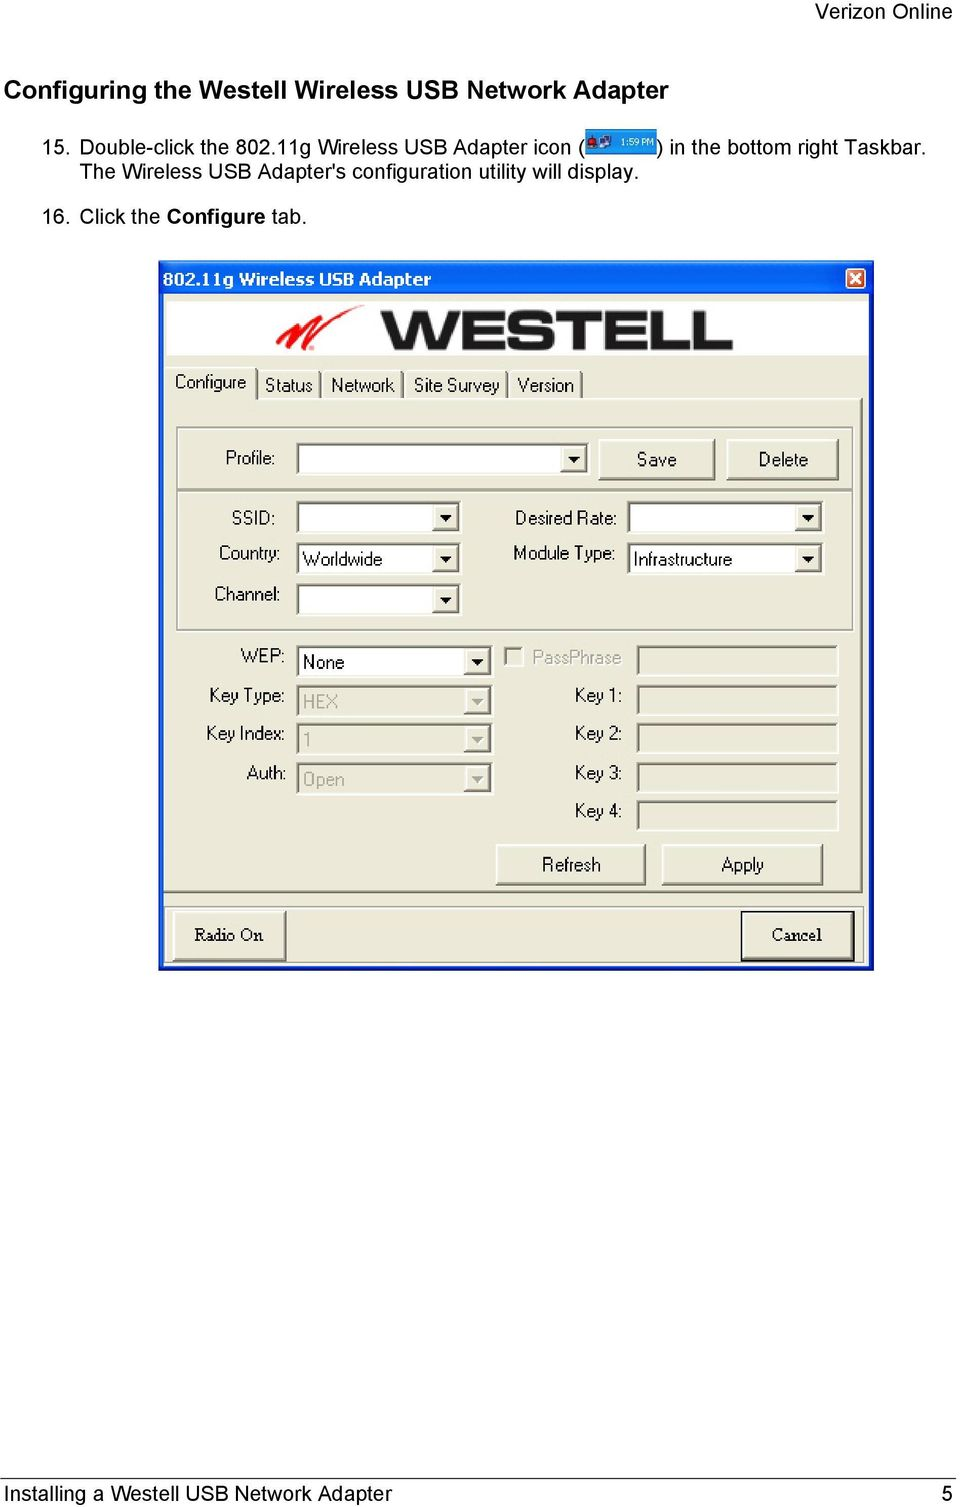 Installing a westell usb network adapter pdf.